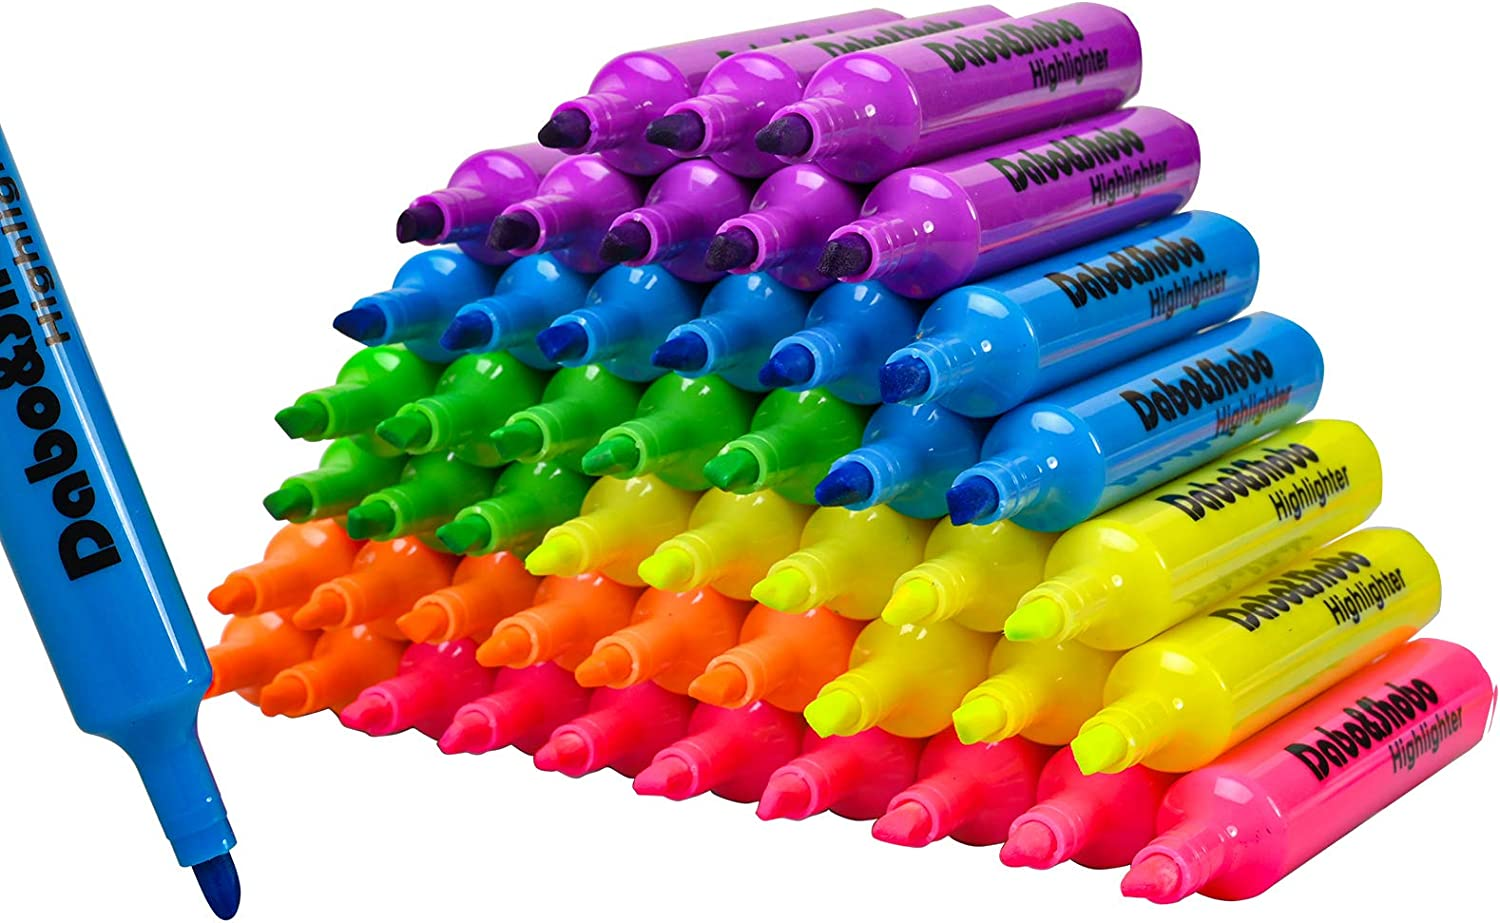 Dabo & Shobo Highlighters Set of 48, Colored Markers And Beautiful Combination Set Liquid Ink Fast Drying And Not Easy To Fade Are Suitable For Classroom, Office And Shop Short Style : Office Products